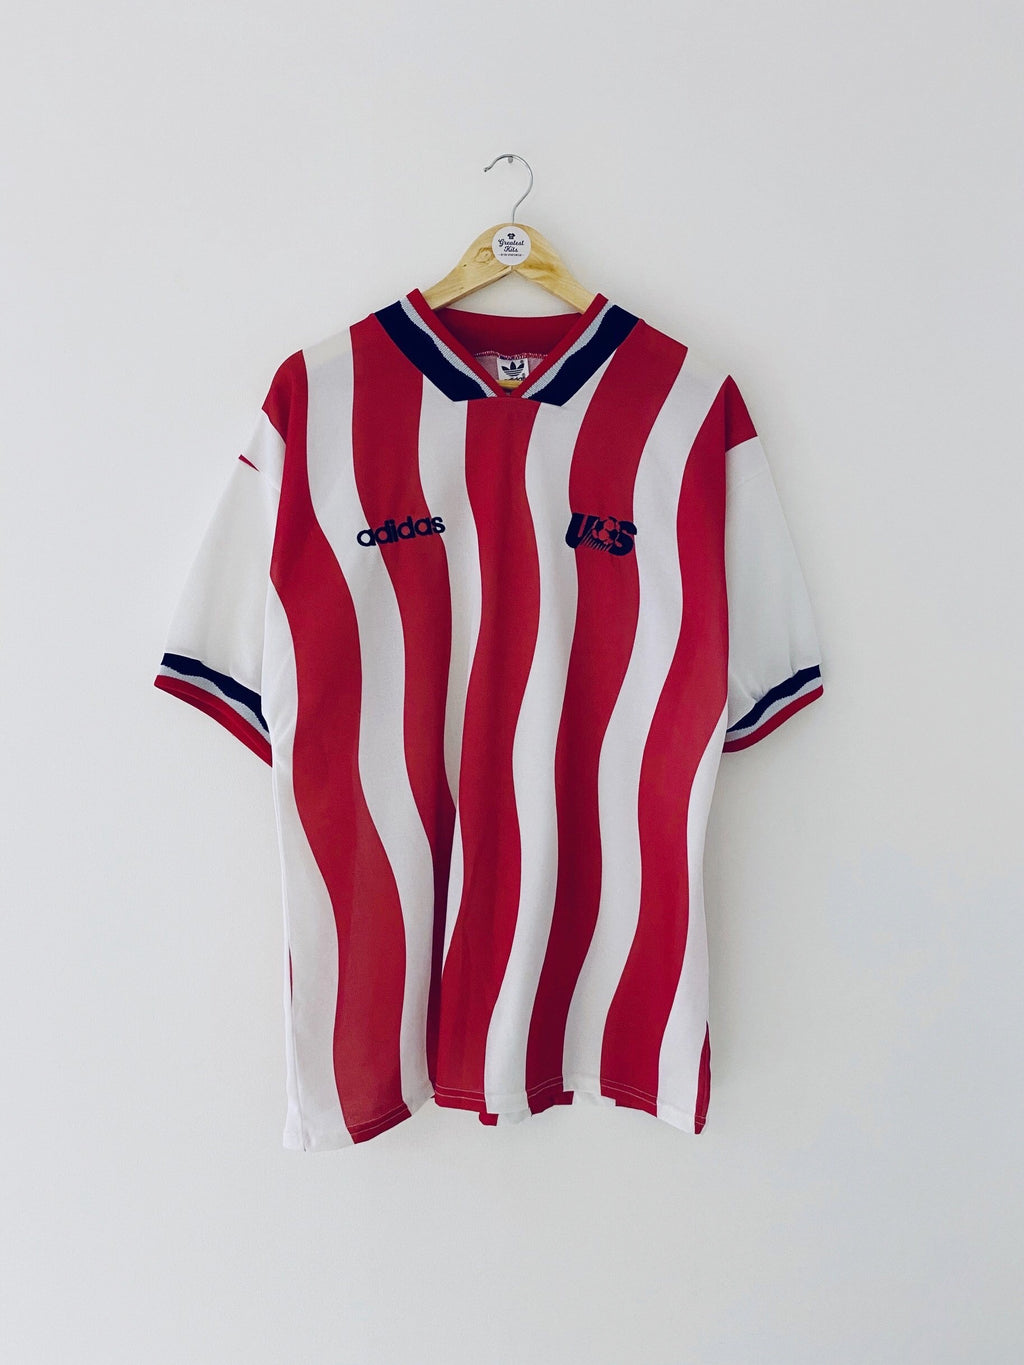 1994 USA Home Shirt (L) 8.5/10